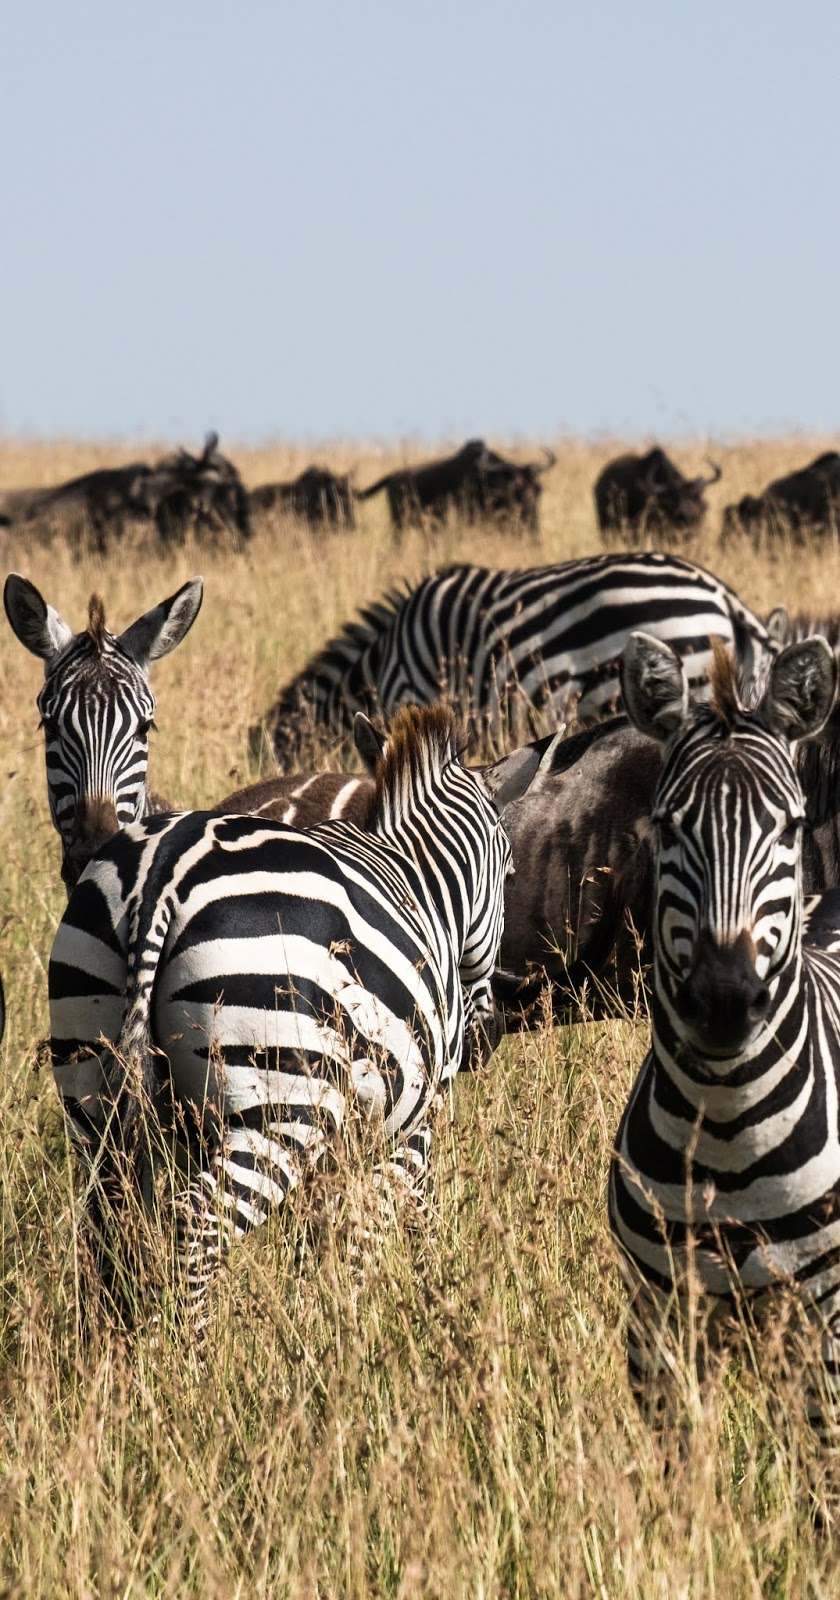 Zebras on the savanna plains.